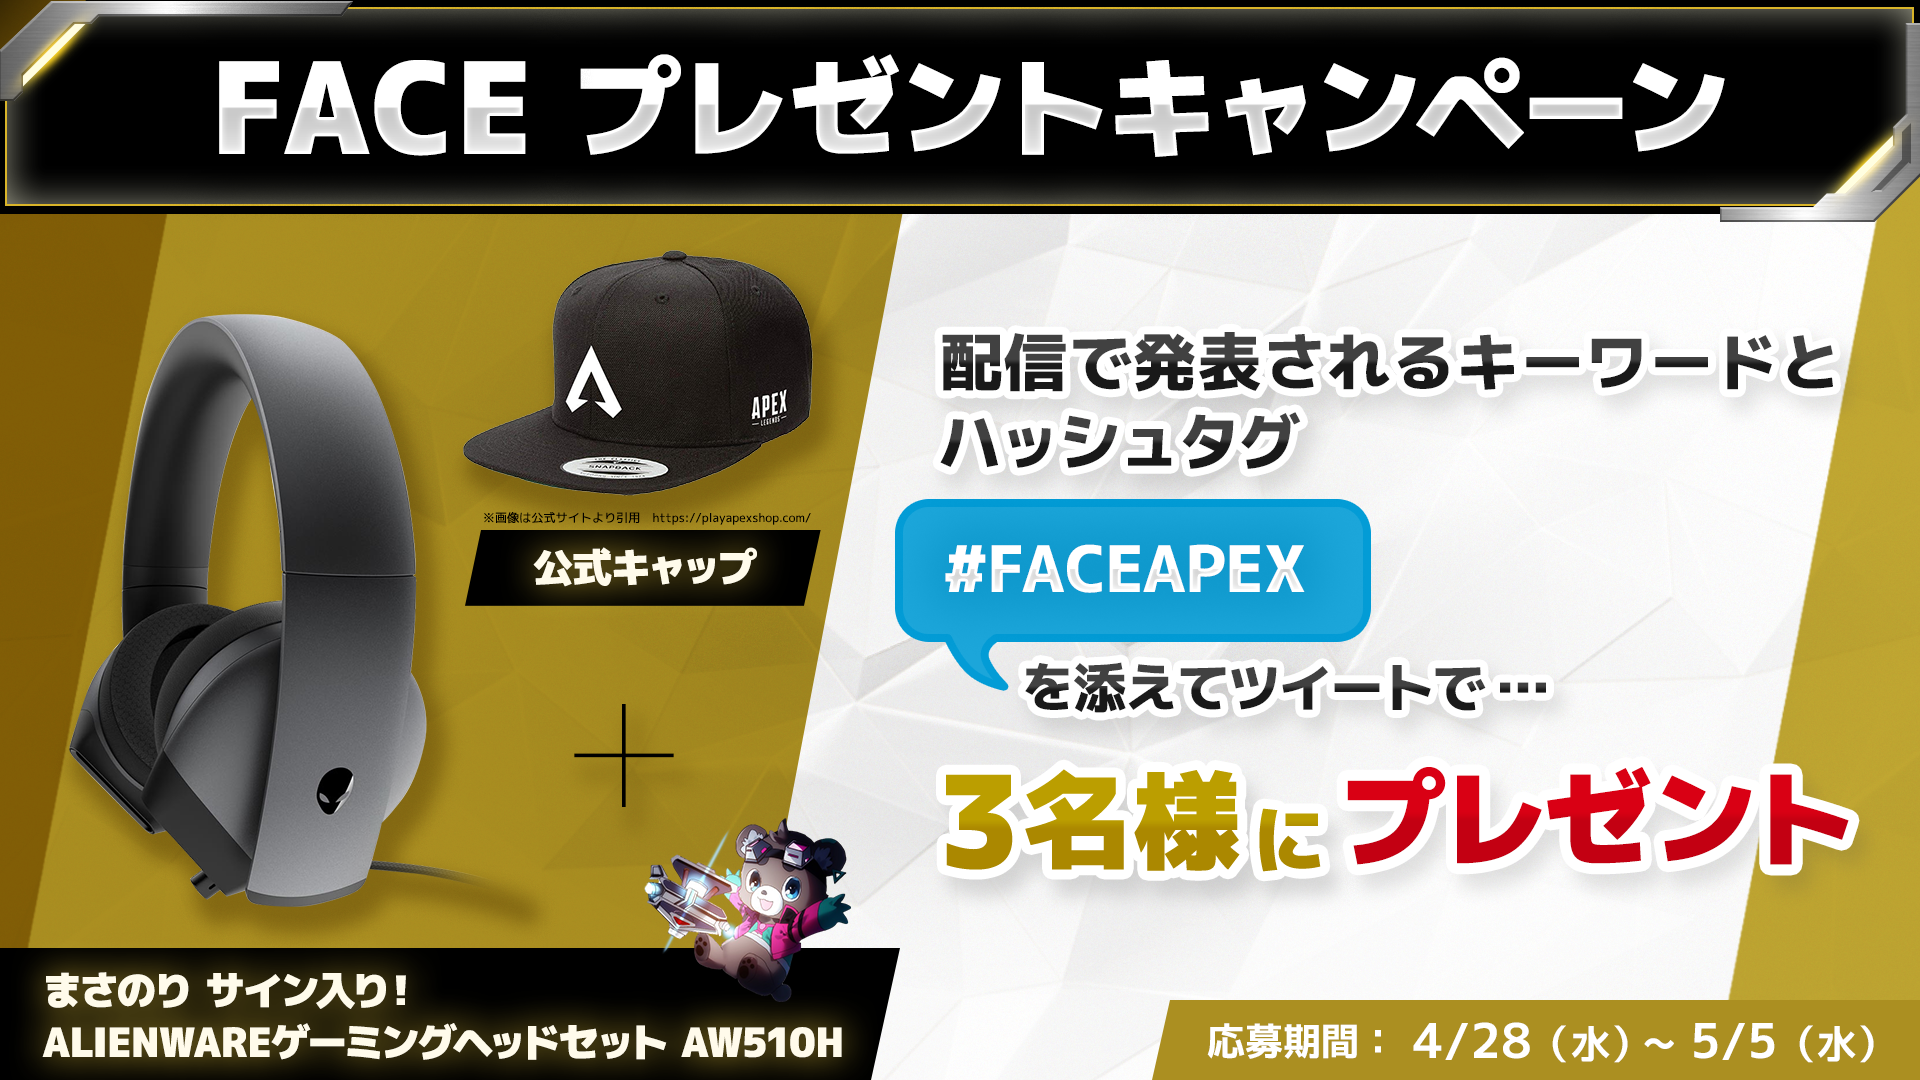 FACE_APEX_Slide_キャップ+ヘッドセット (1).png